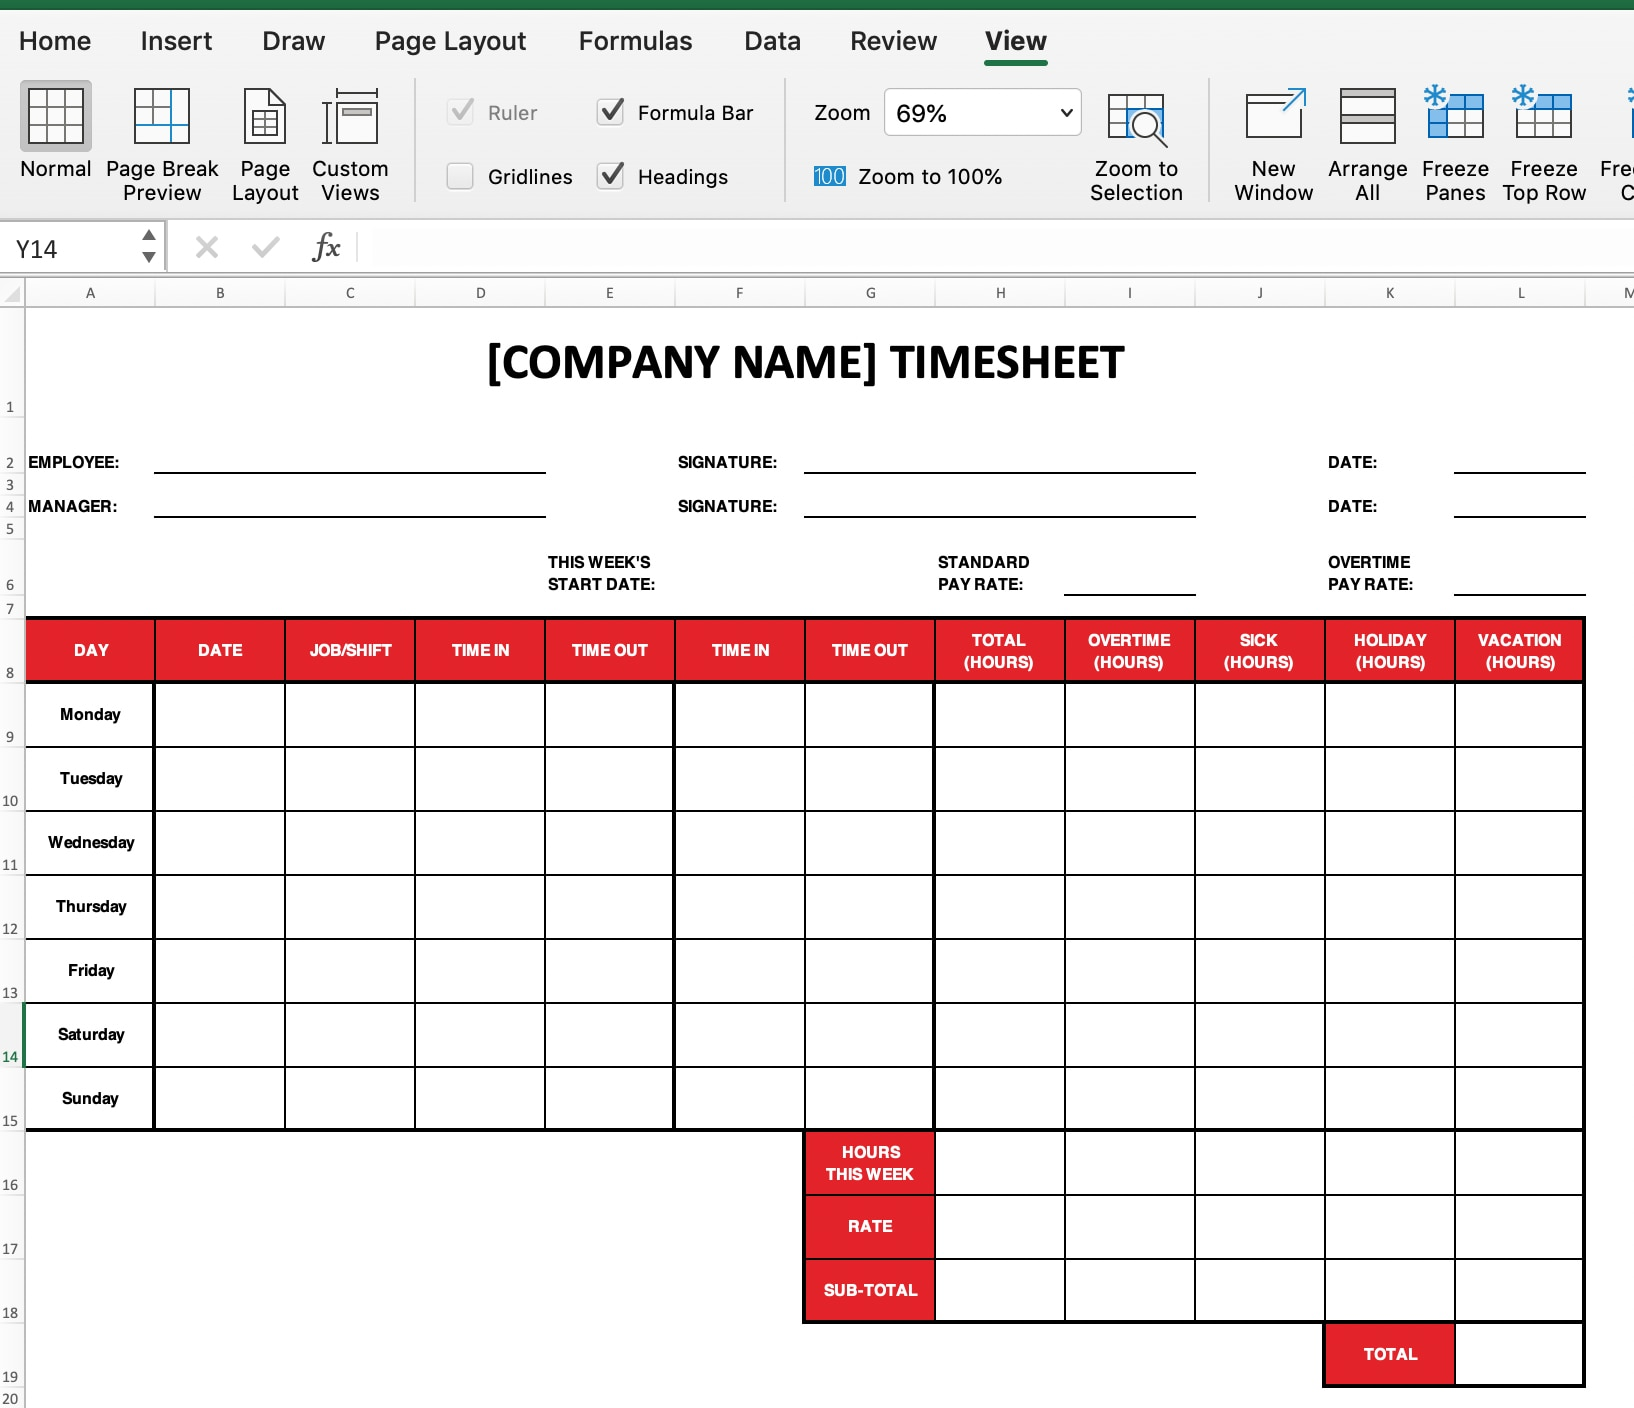 How to print excel timesheet.